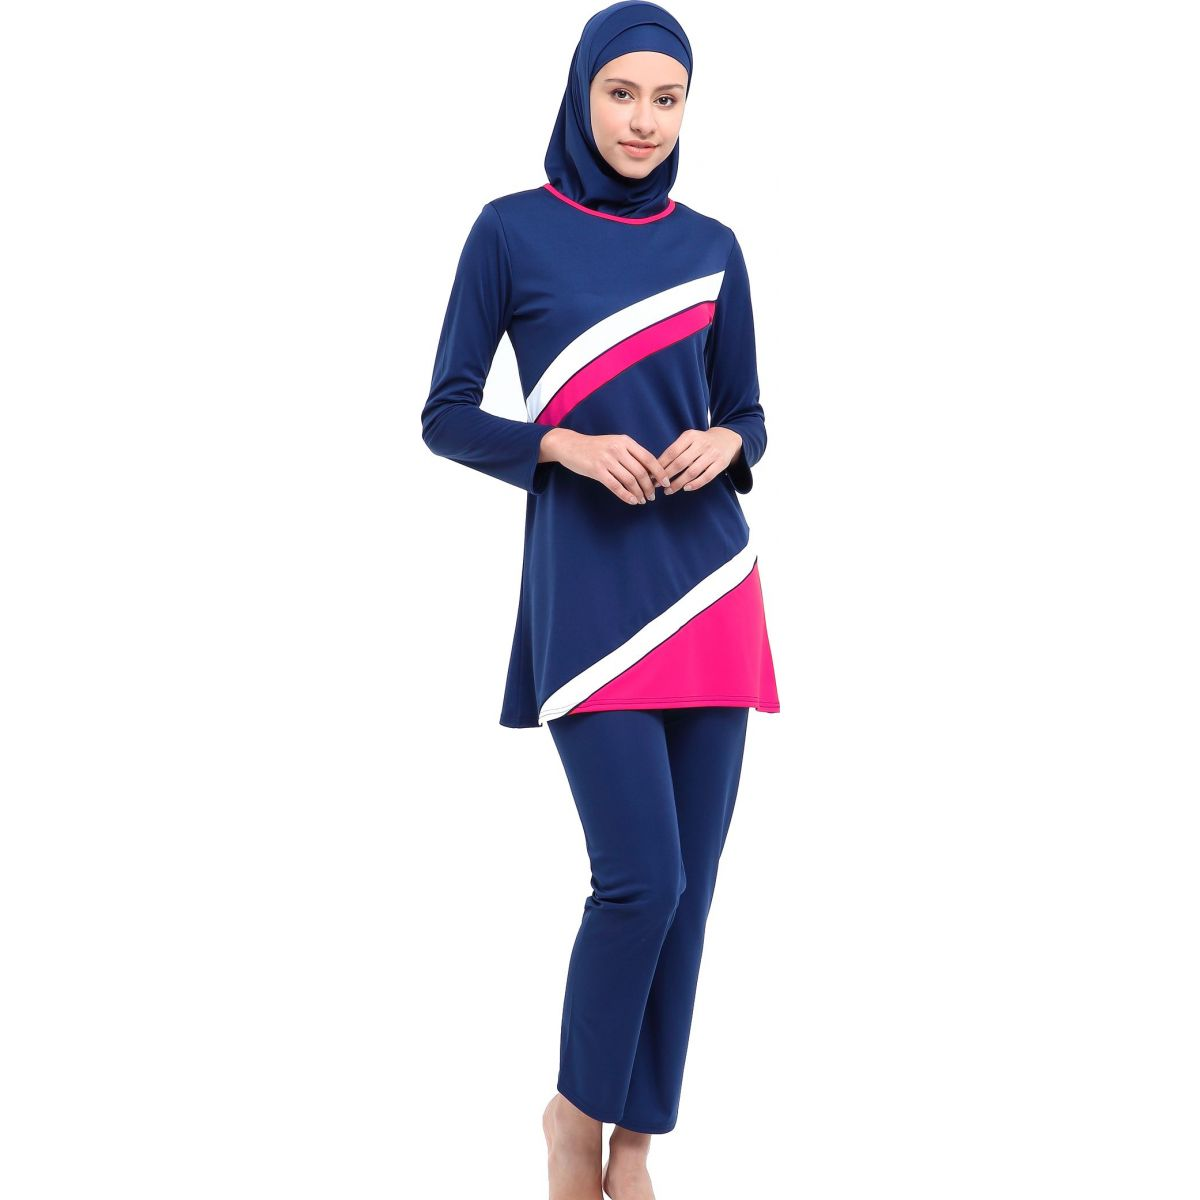 Argisa 7013 Long Sleeved Baggy The Tights Plus Size Full Hijab swimwear 46-52 Muslim Hijab Islamic Swimsuit Burkini Turkey Full Cover swim